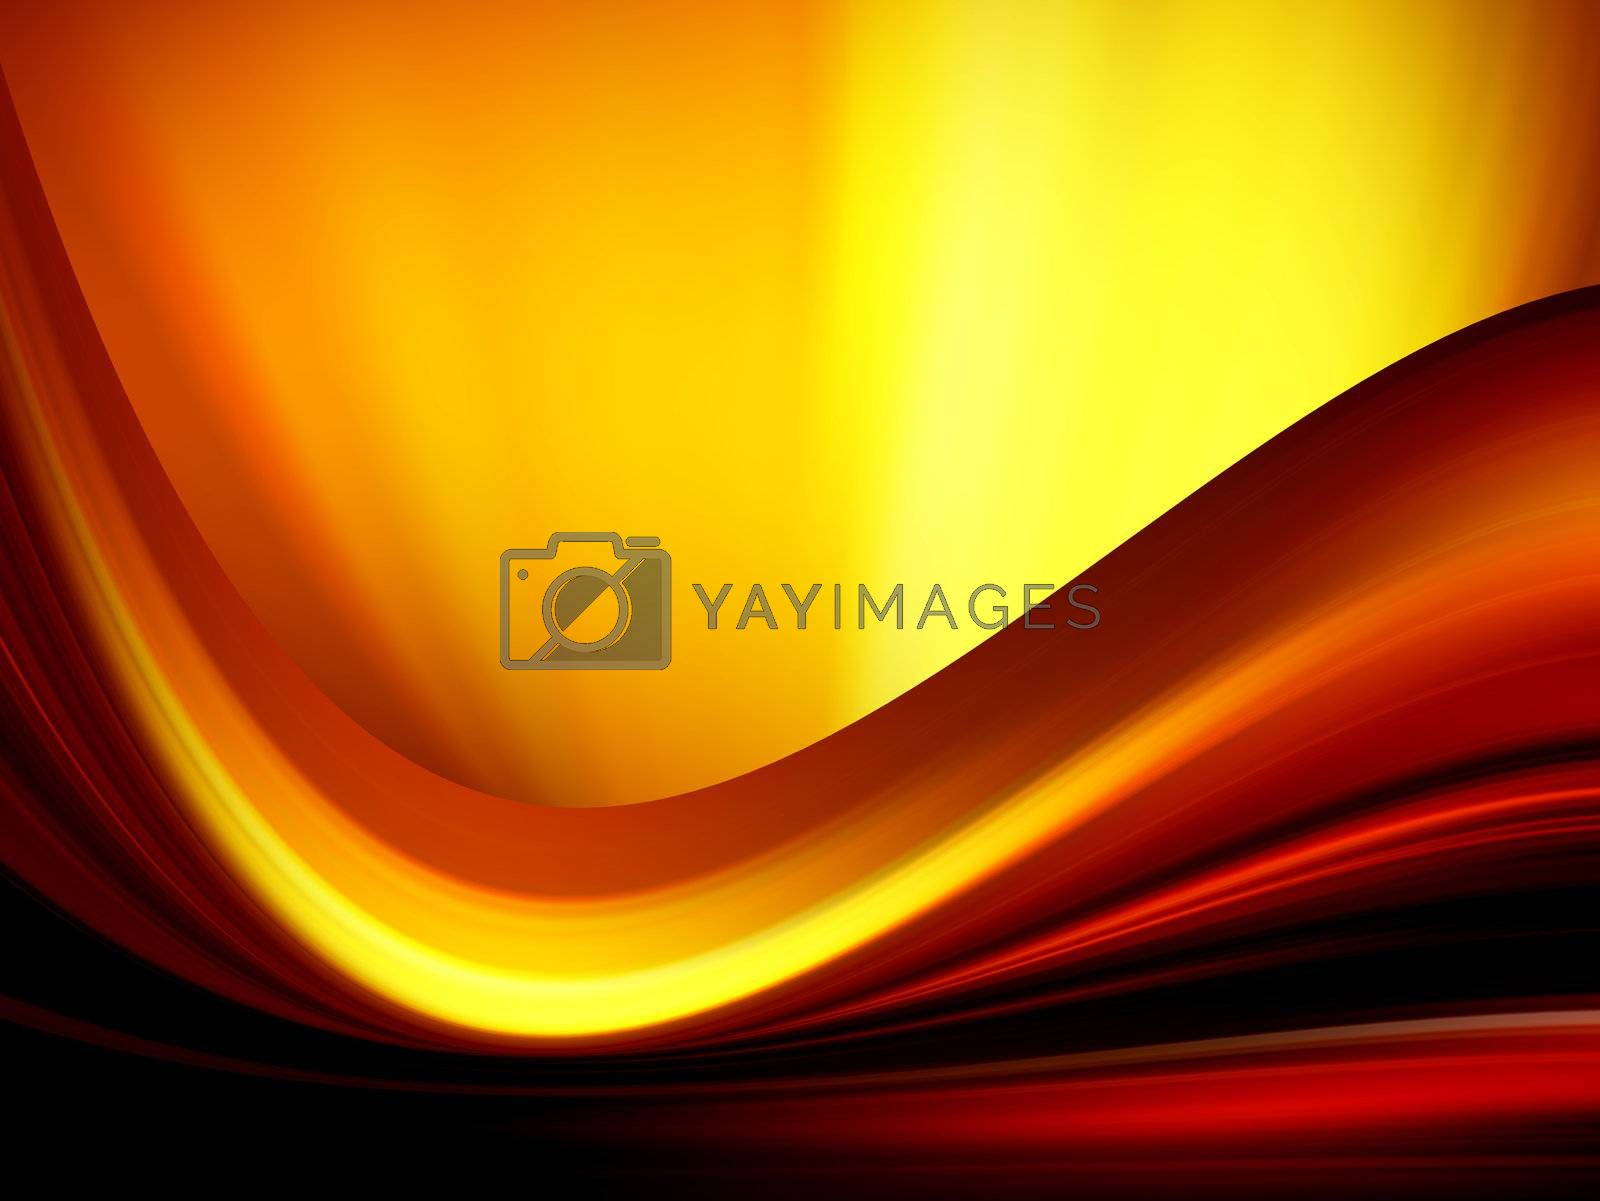 dynamic wave background, illustration of conceptual fire